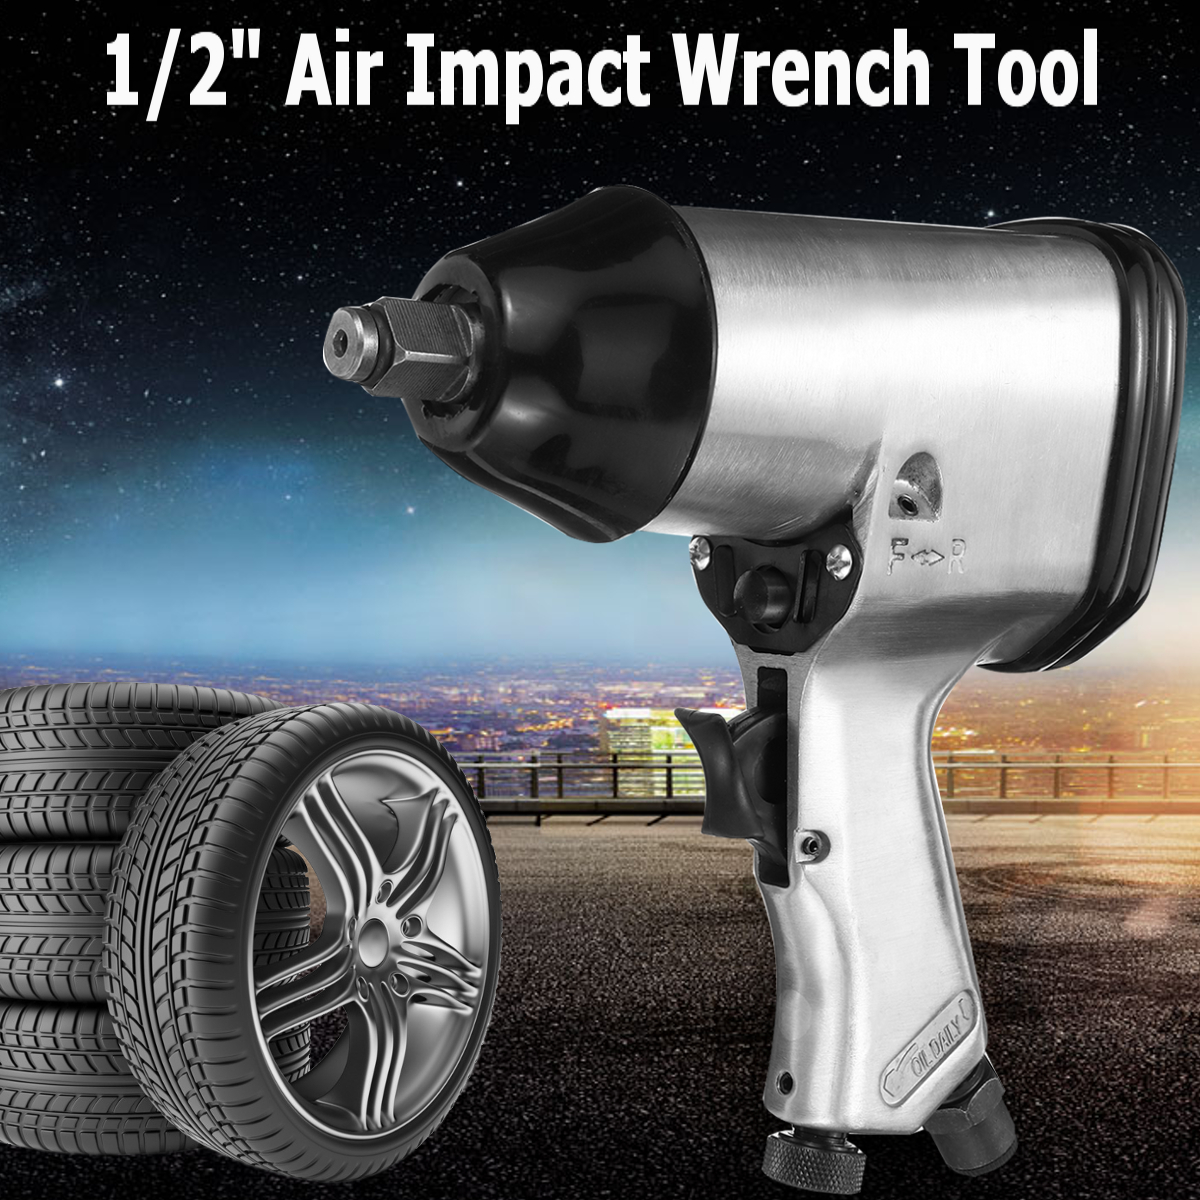 1/2Drive Heavy Duty Pneumatic Air Impact Wrench Tool For Car Wheel Repairing Die Cast Aluminum High Torque Low Noise 4CFM@90PSI